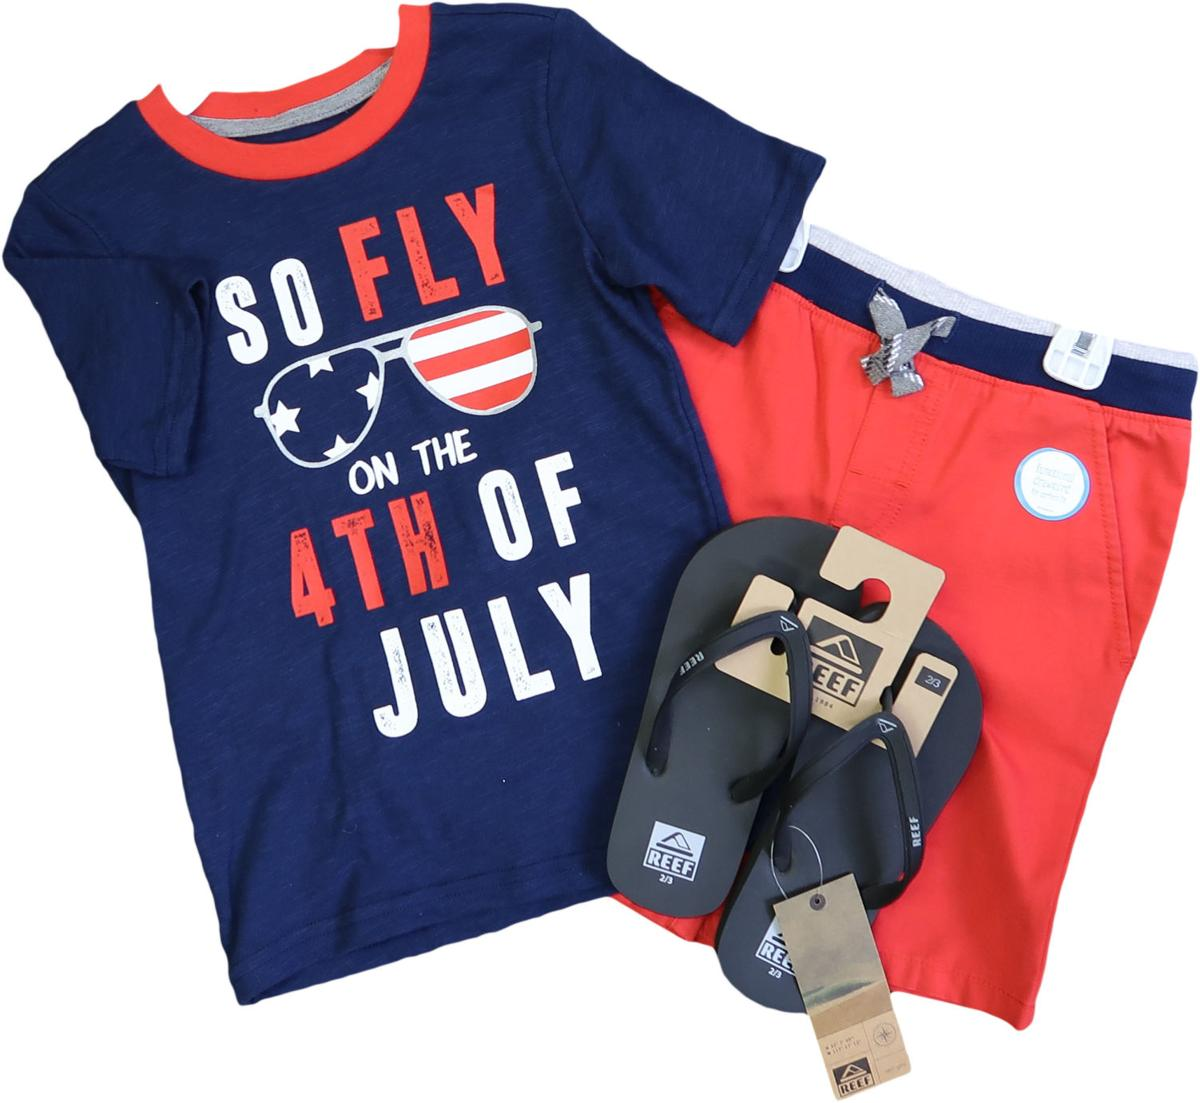 4th of July Duds